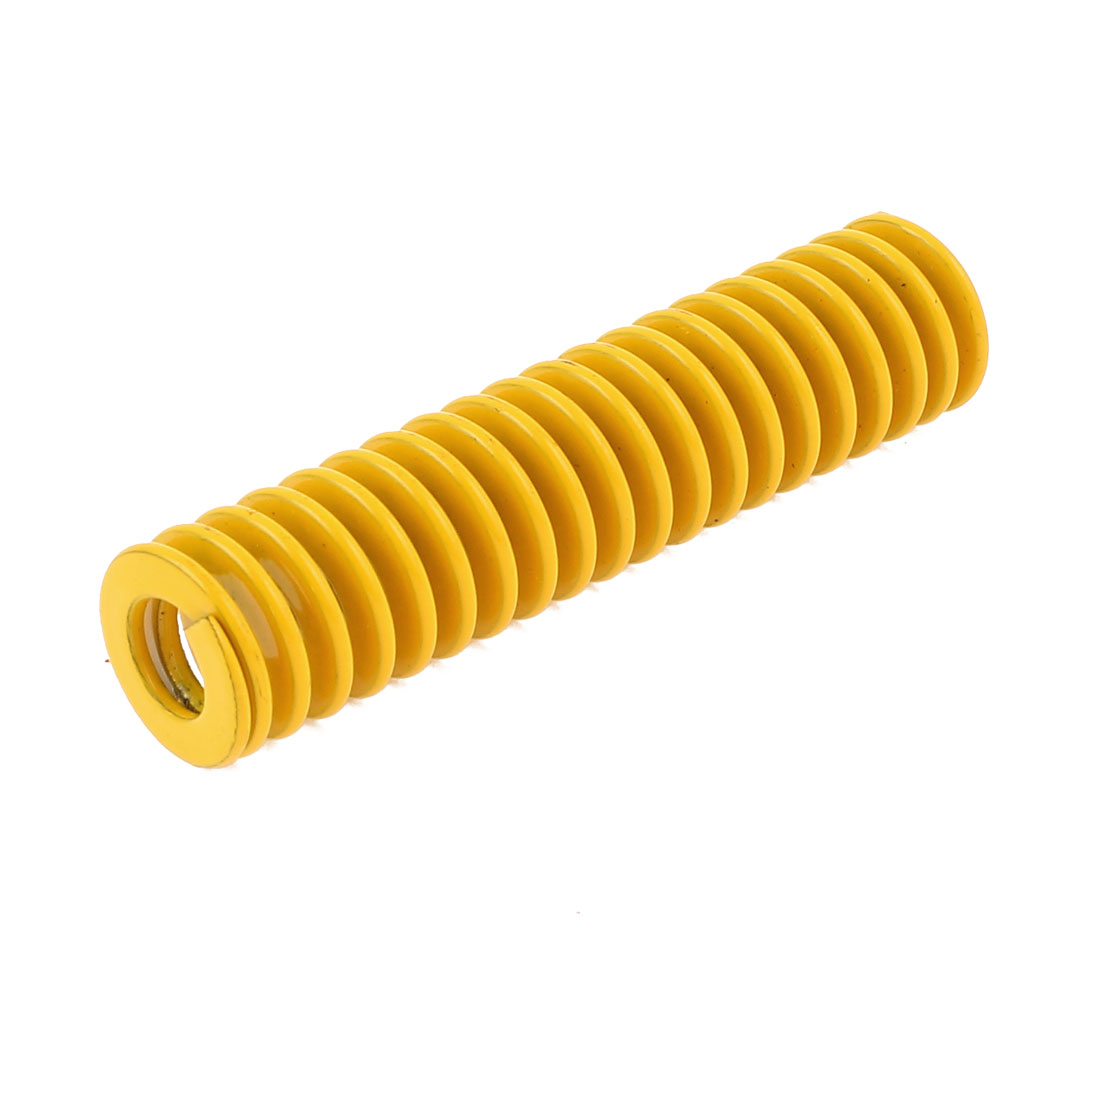 Yellow 14mm x 7mm x 60mm Rectangular Section Mold Mould Die Spring